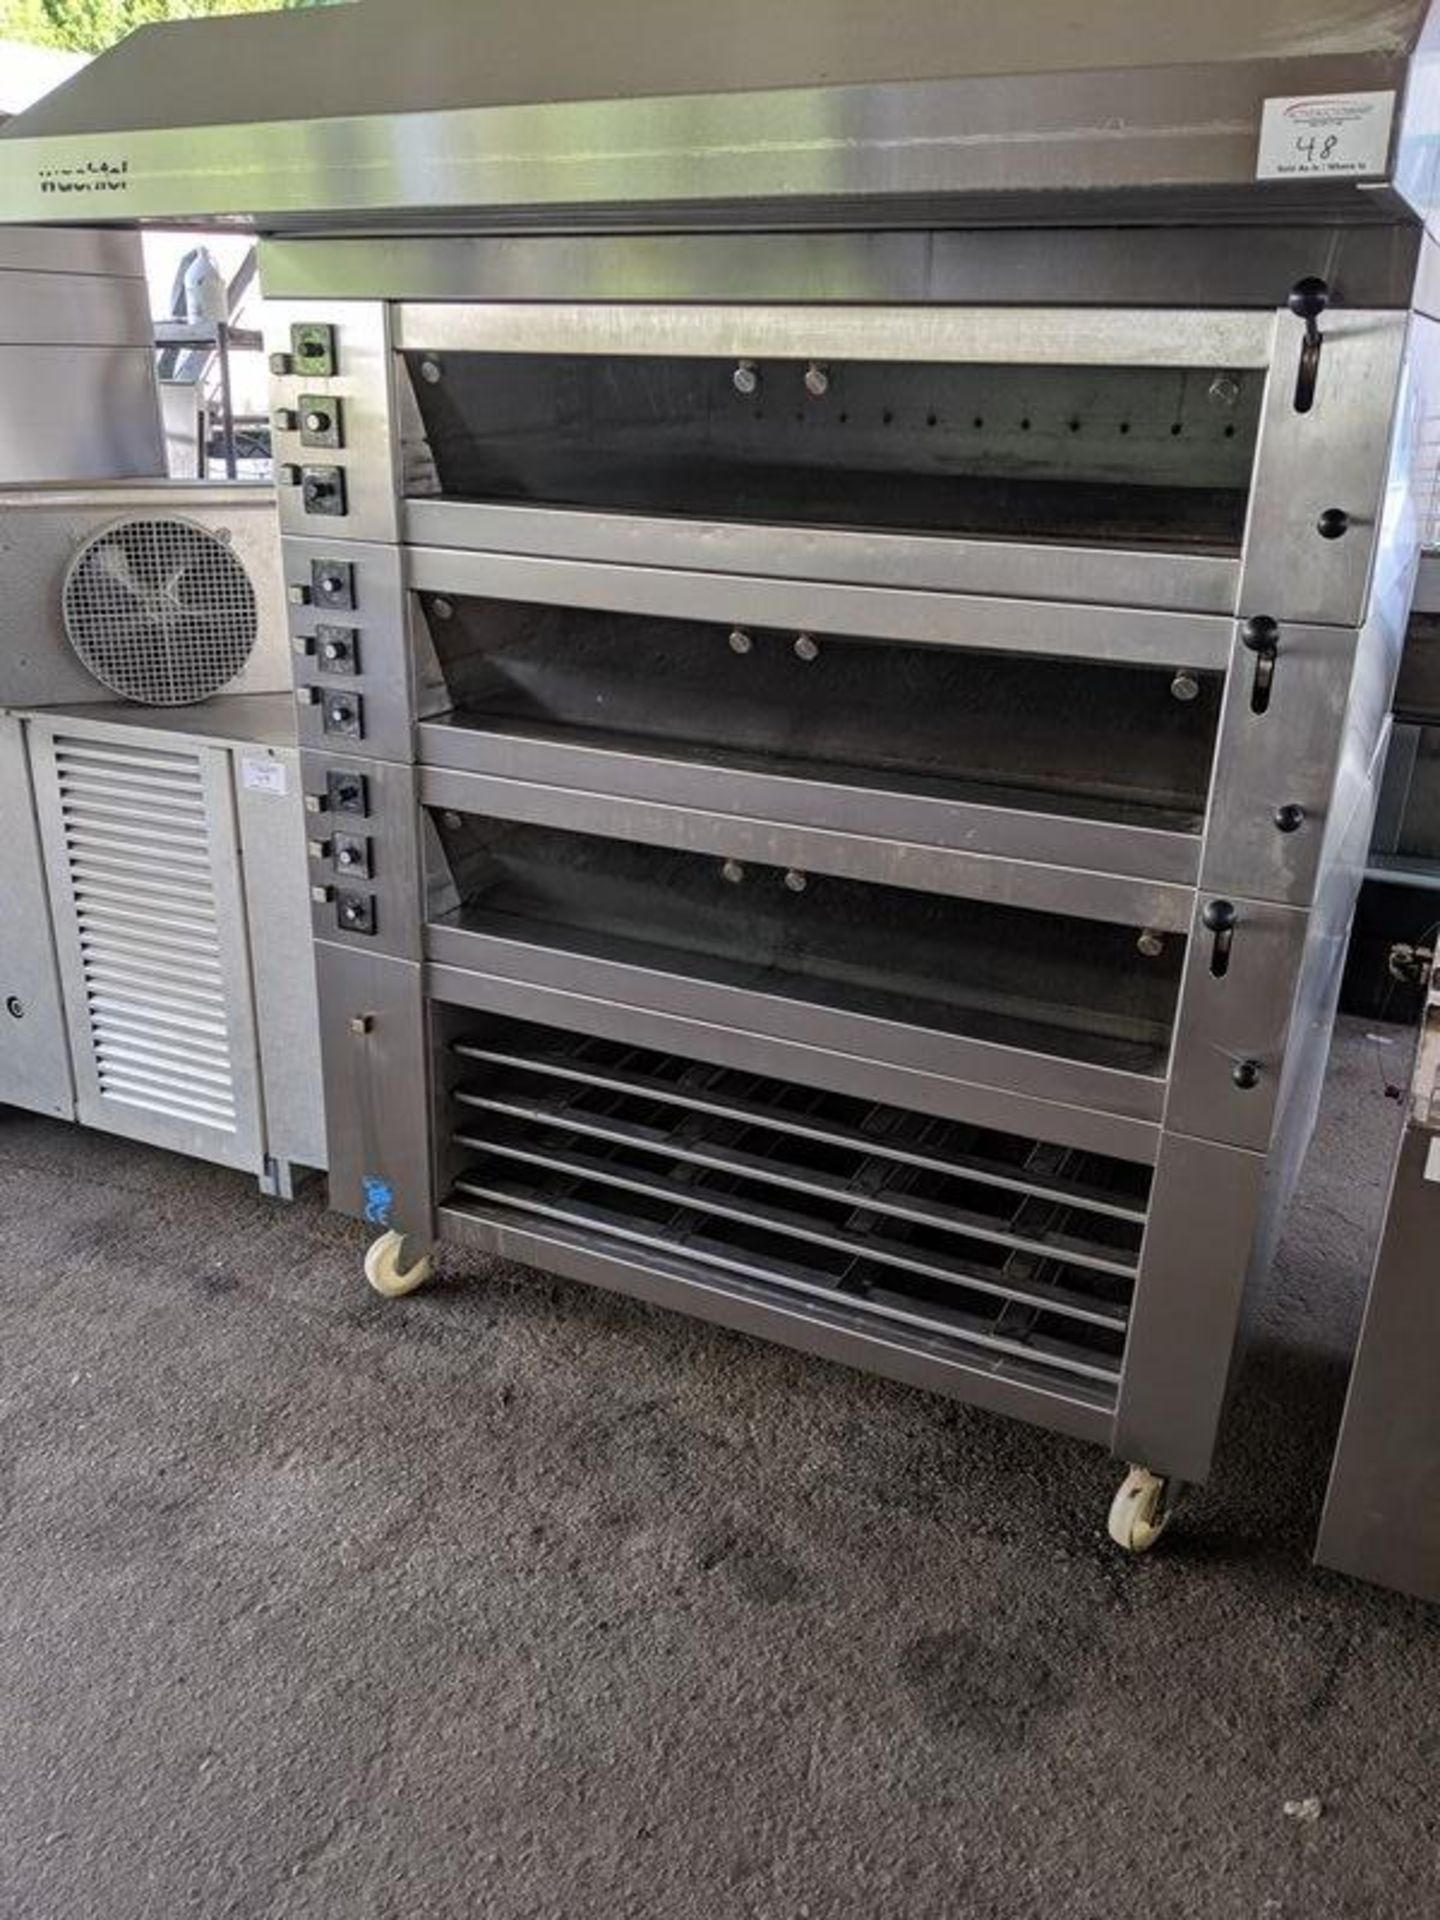 Lot 48 - Wachtel Piccolo 3 Deck Electric Bake Oven with Steam